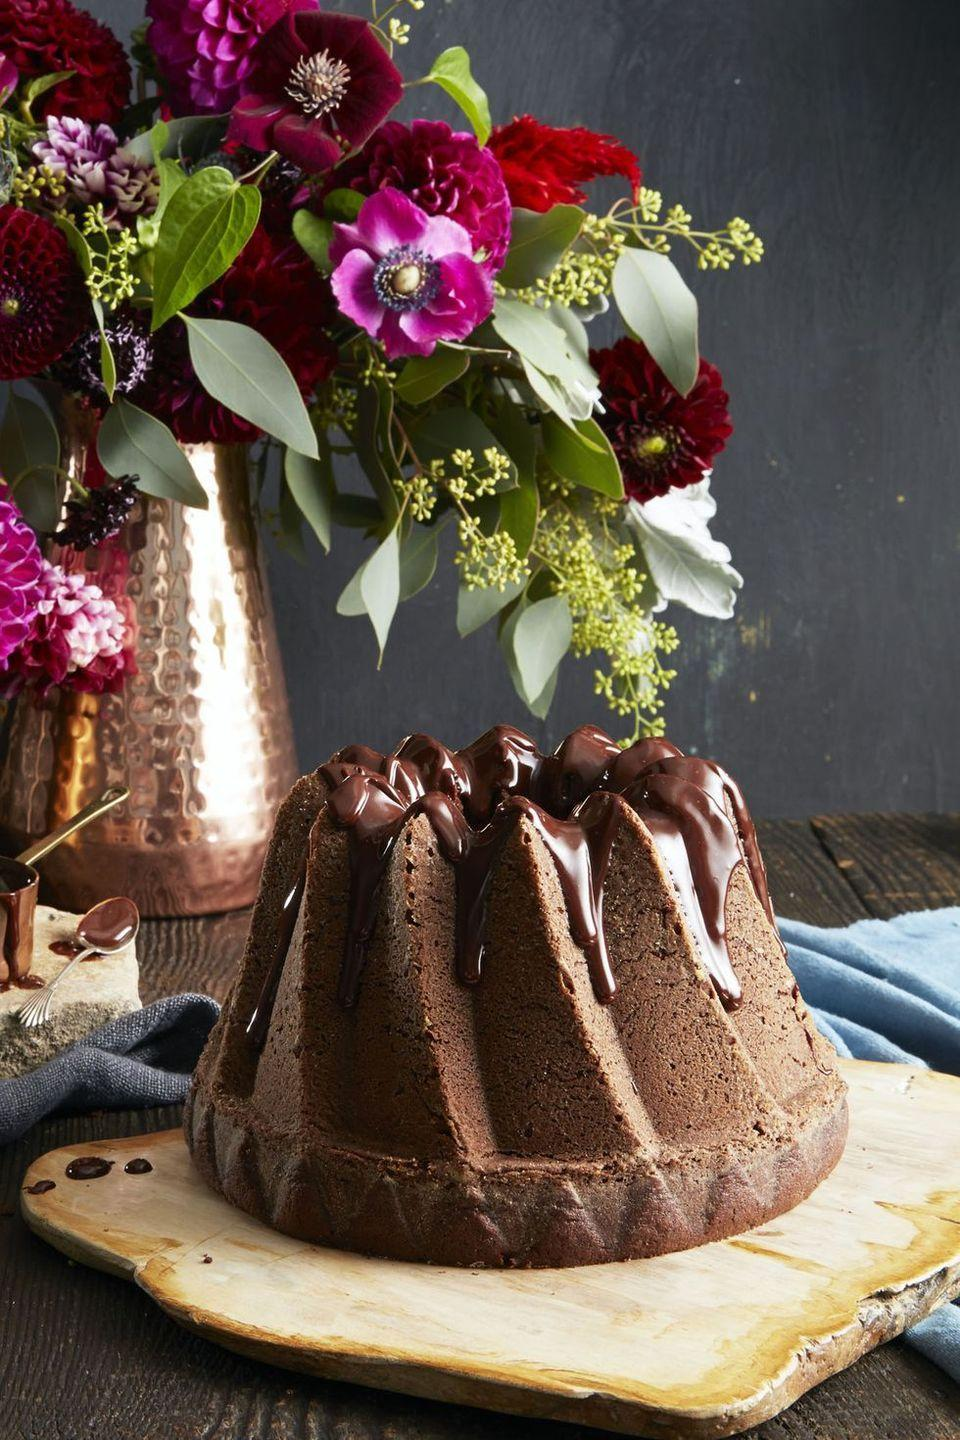 "<p>Because no dessert spread would be complete without a chocolate option in the mix.</p><p><em><a href=""https://www.goodhousekeeping.com/food-recipes/dessert/a35180/double-chocolate-bundt/"" rel=""nofollow noopener"" target=""_blank"" data-ylk=""slk:Get the recipe for Double Chocolate Bundt »"" class=""link rapid-noclick-resp"">Get the recipe for Double Chocolate Bundt » </a></em></p><p><strong>RELATED: </strong><a href=""https://www.goodhousekeeping.com/food-recipes/dessert/g3975/chocolate-cake-recipes/"" rel=""nofollow noopener"" target=""_blank"" data-ylk=""slk:30 Best Chocolate Cake Recipes You'll Ever Try"" class=""link rapid-noclick-resp"">30 Best Chocolate Cake Recipes You'll Ever Try</a></p>"